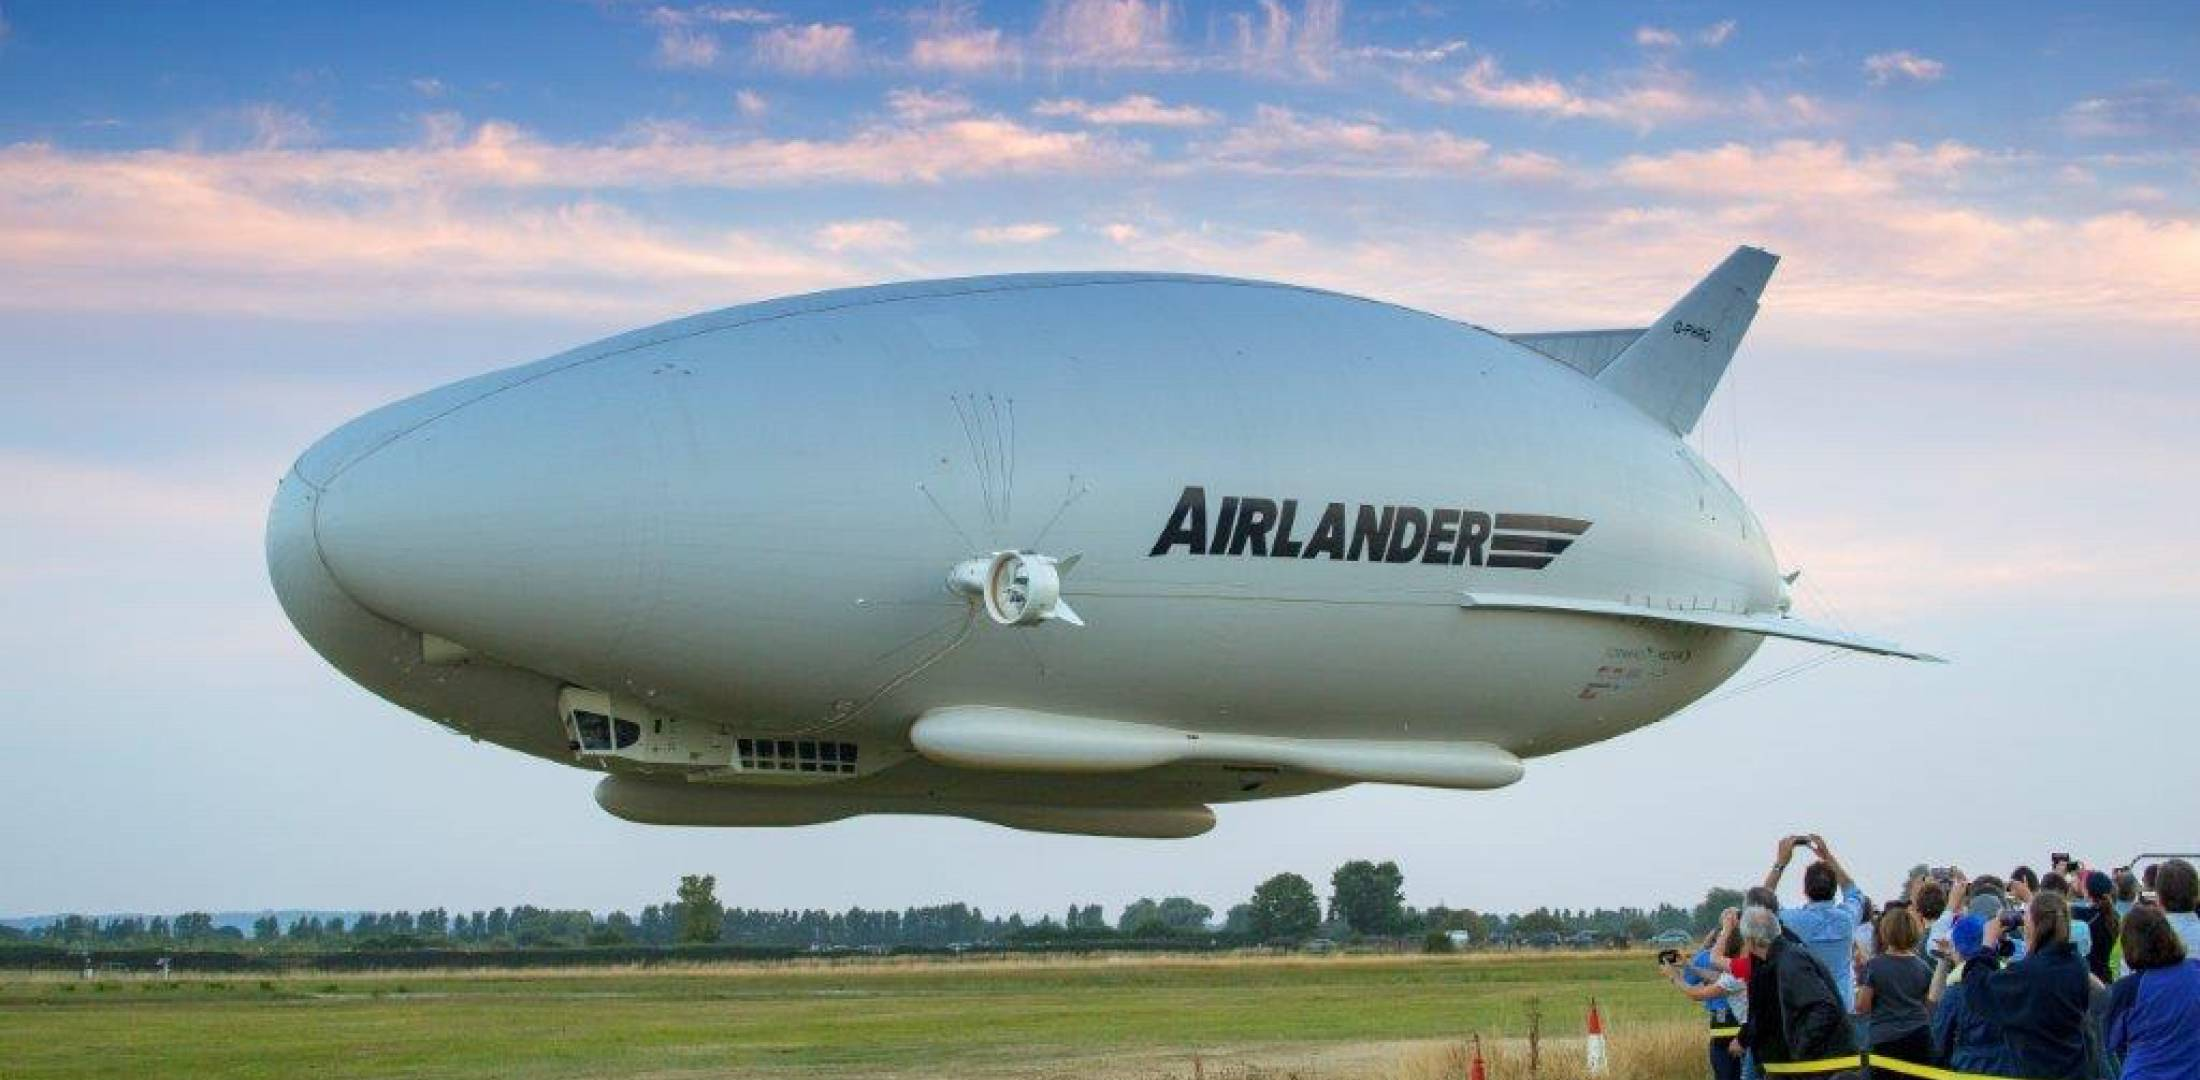 IMG:https://www.ainonline.com/sites/default/files/styles/ain30_fullwidth_large_2x/public/uploads/2018/06/347_airlander_10_first_flight.jpg?itok=xpJV3cgt&timestamp=1529938856